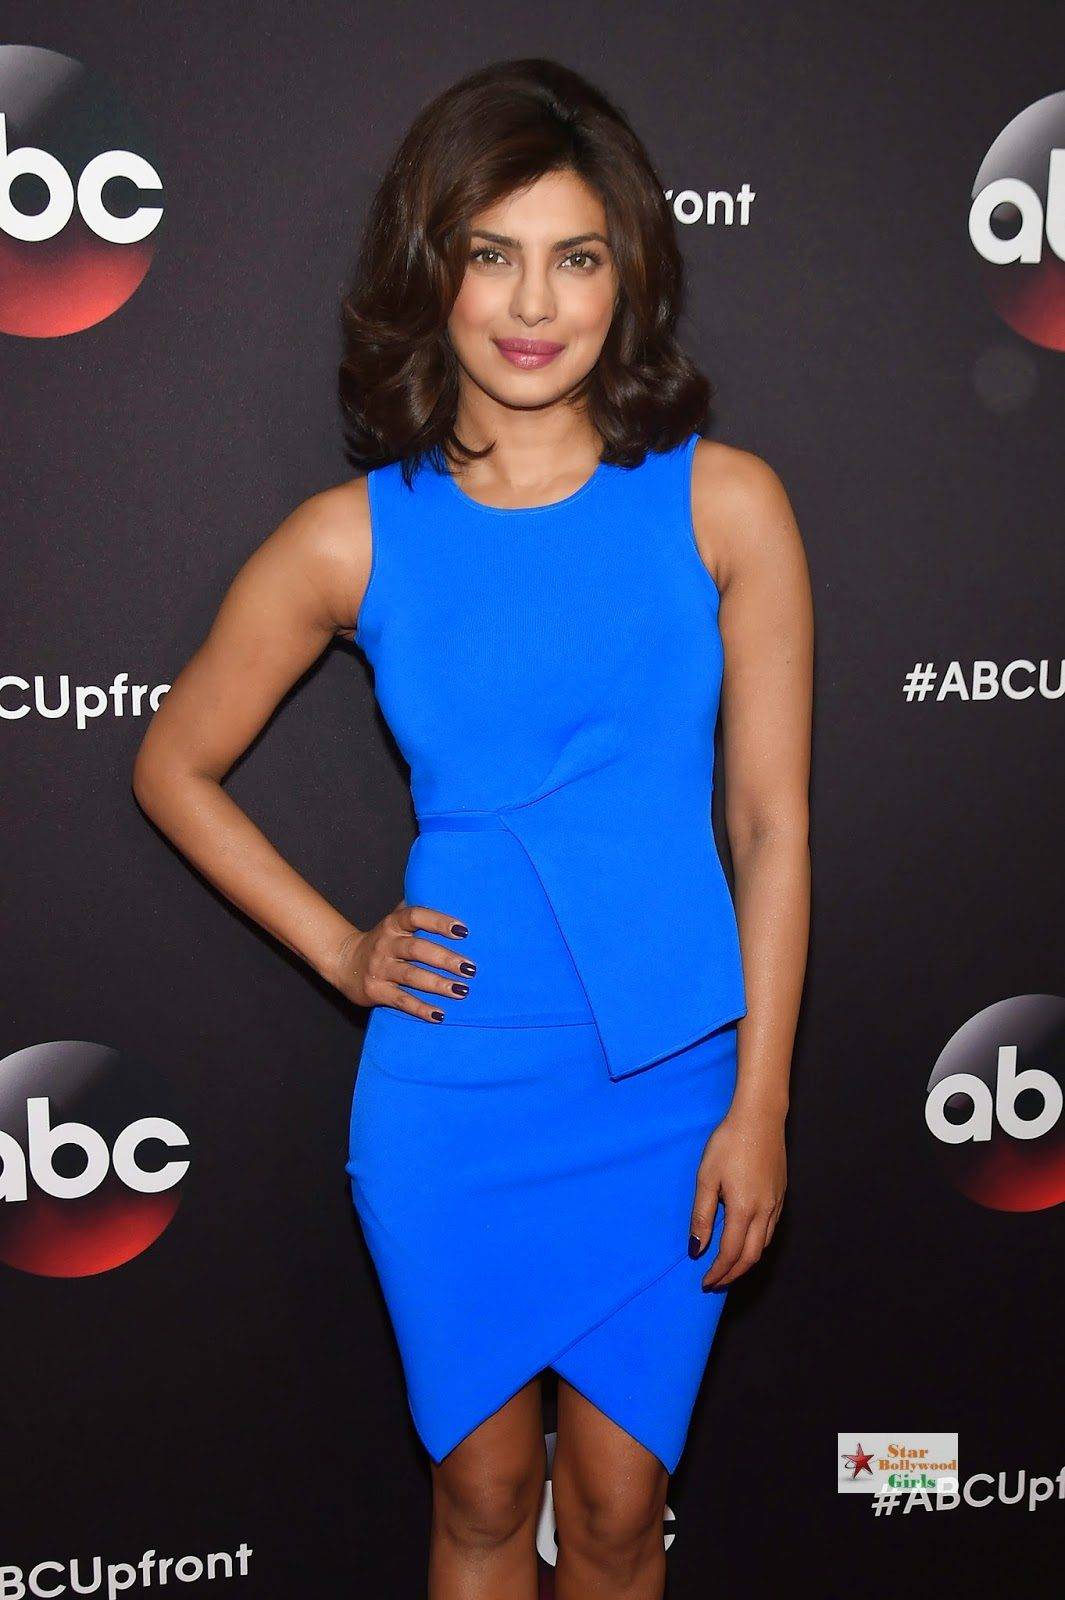 Priyanka Chopra Looks Sexy In Blue Figure Hugging Dress As She Attends The 2015 ABC Upfront At Avery Fisher Hall, Lincoln Center In New York4